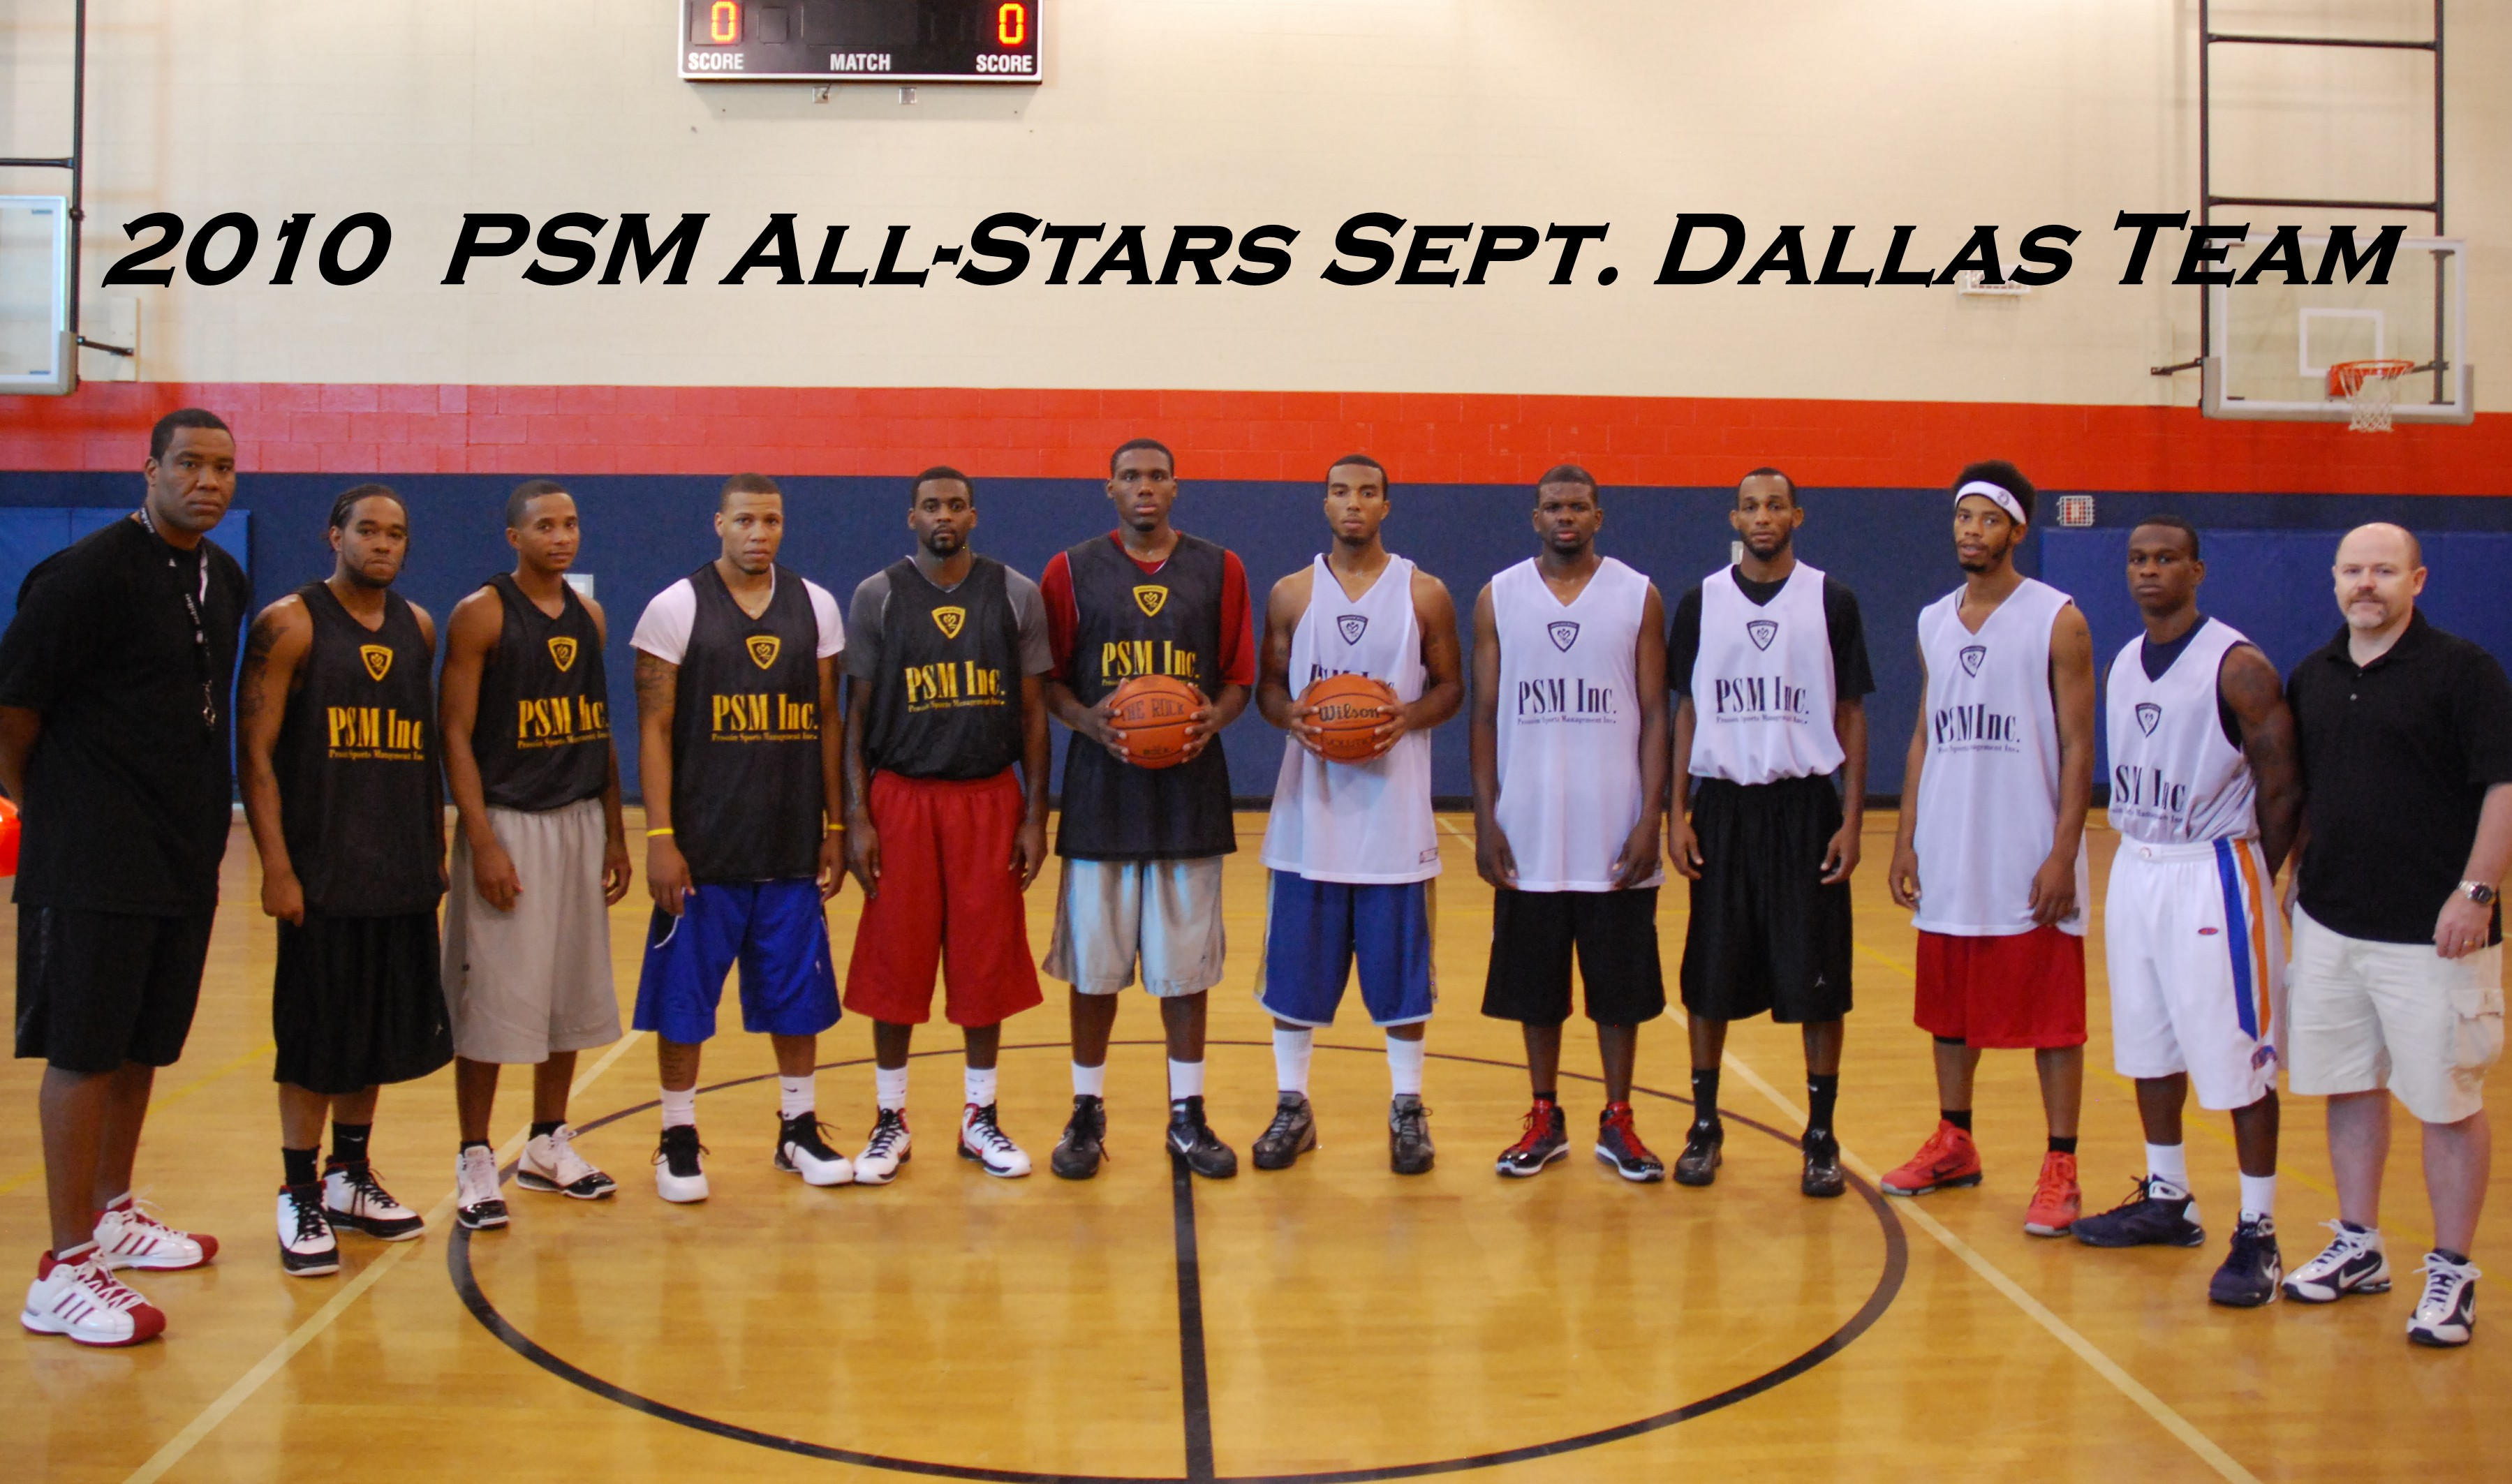 2nd Annual 2010 Europe Summer League - Dallas #1